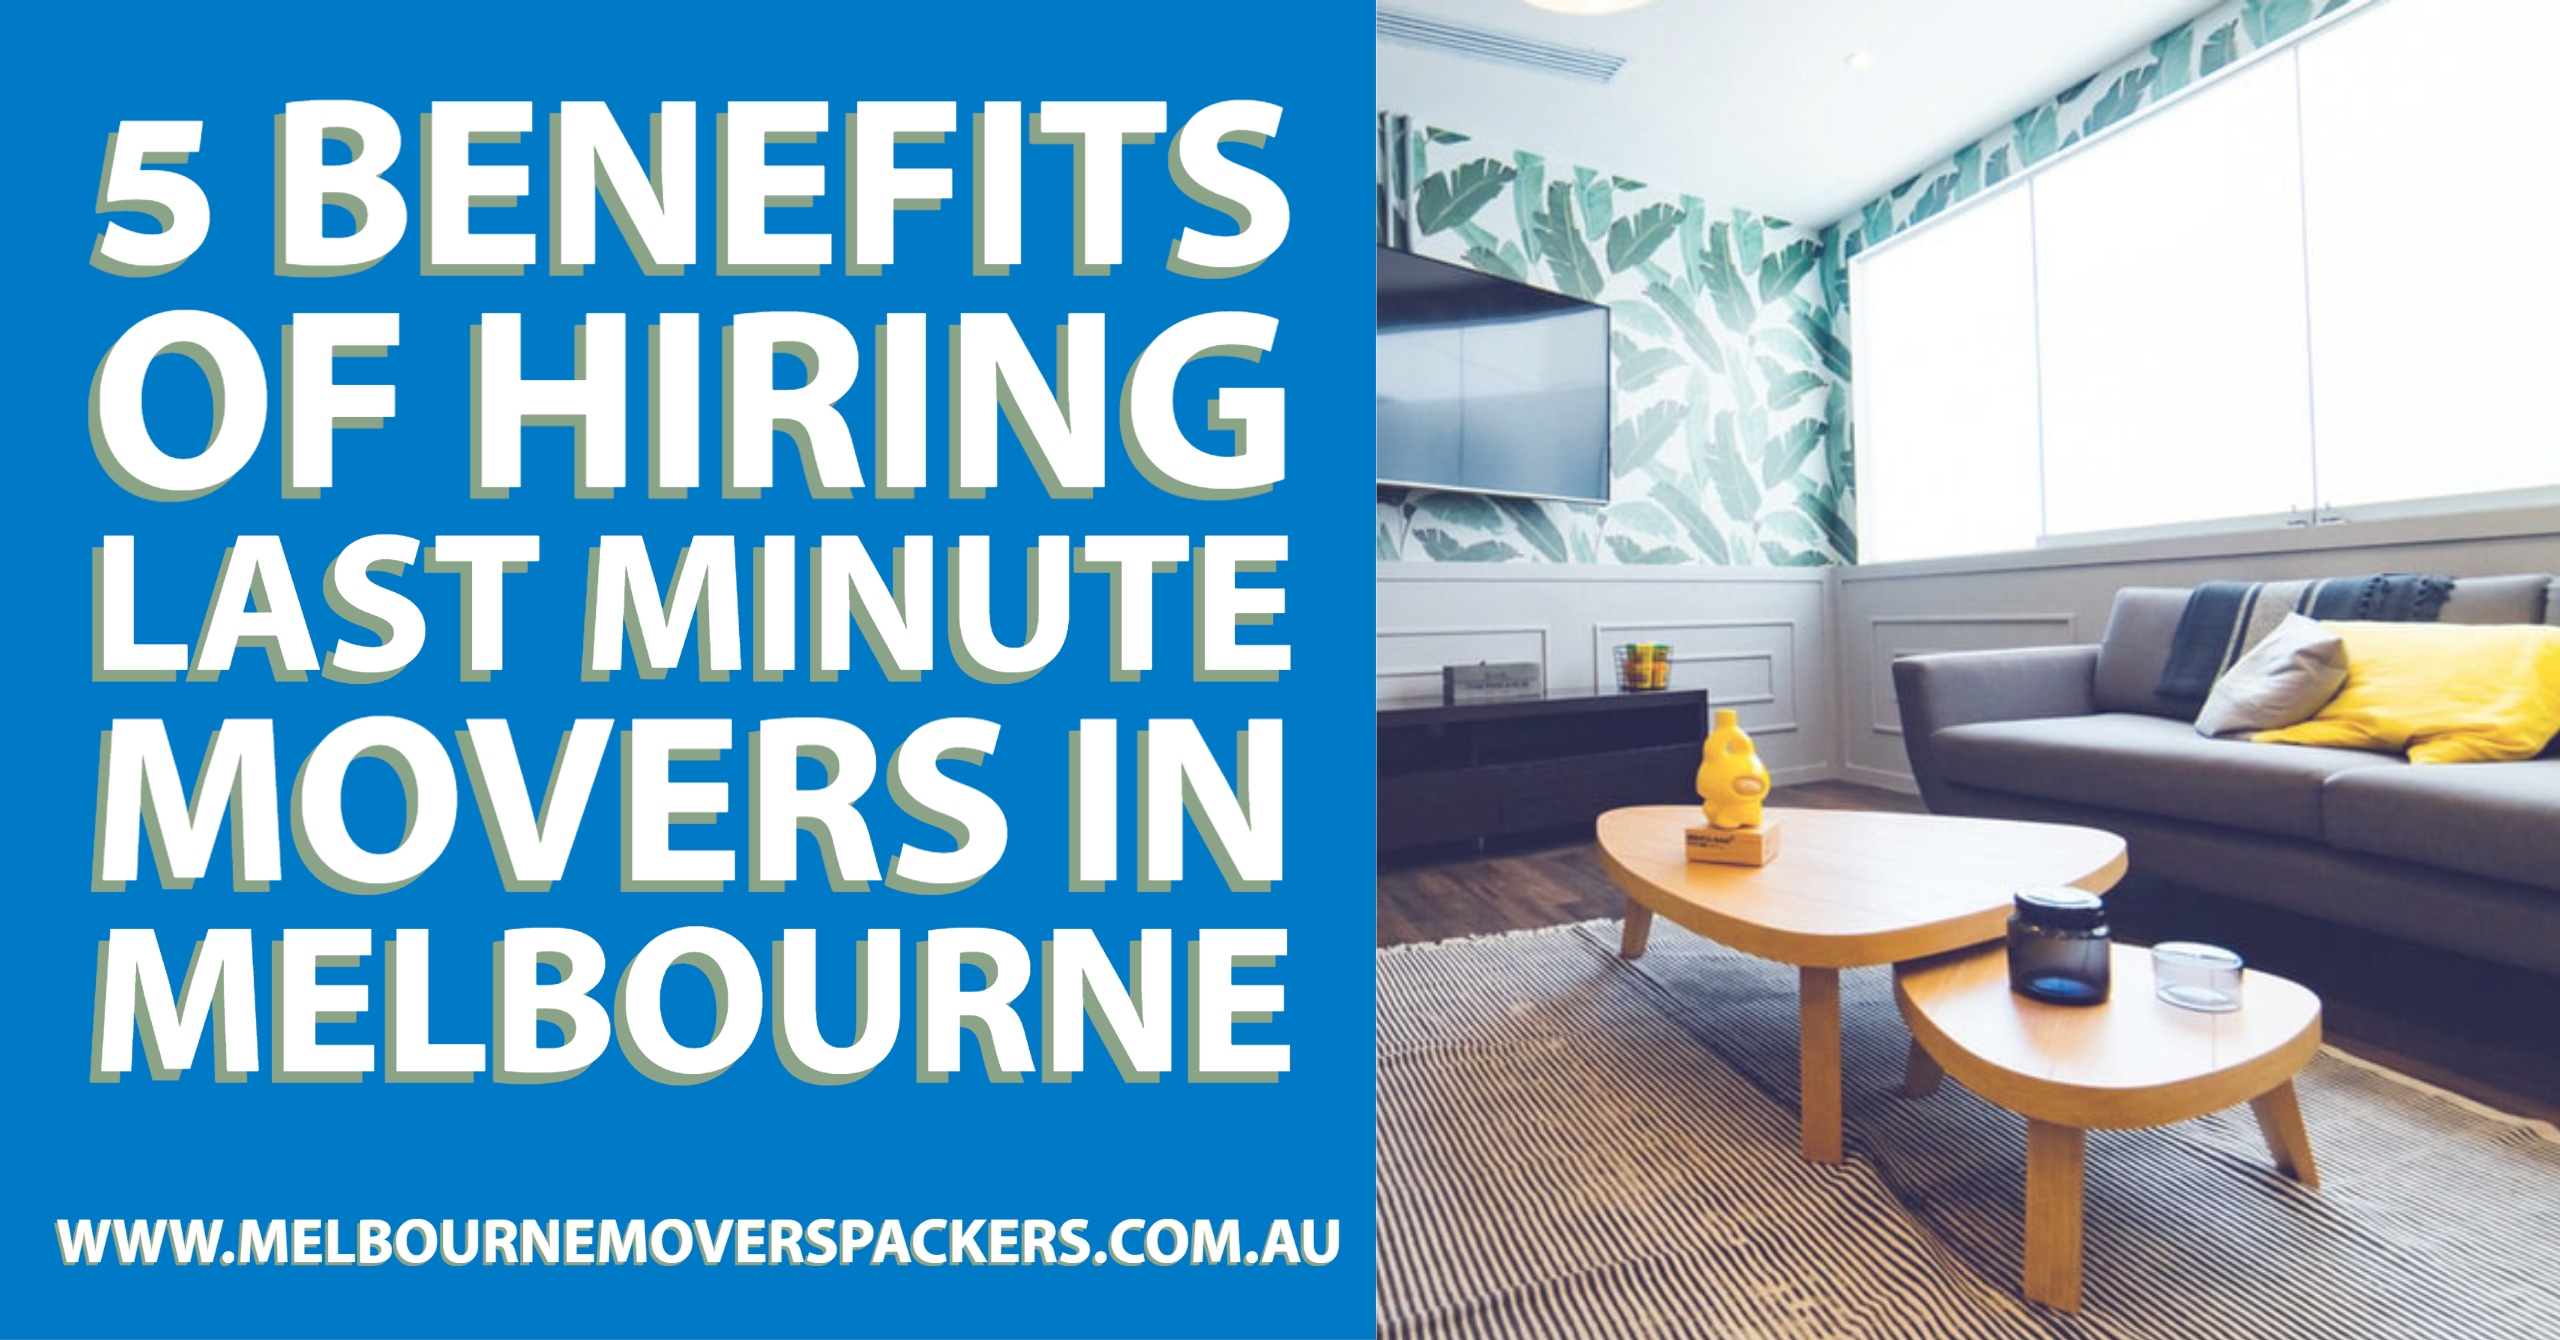 5 Benefits of Hiring Last Minute Movers in Melbourne